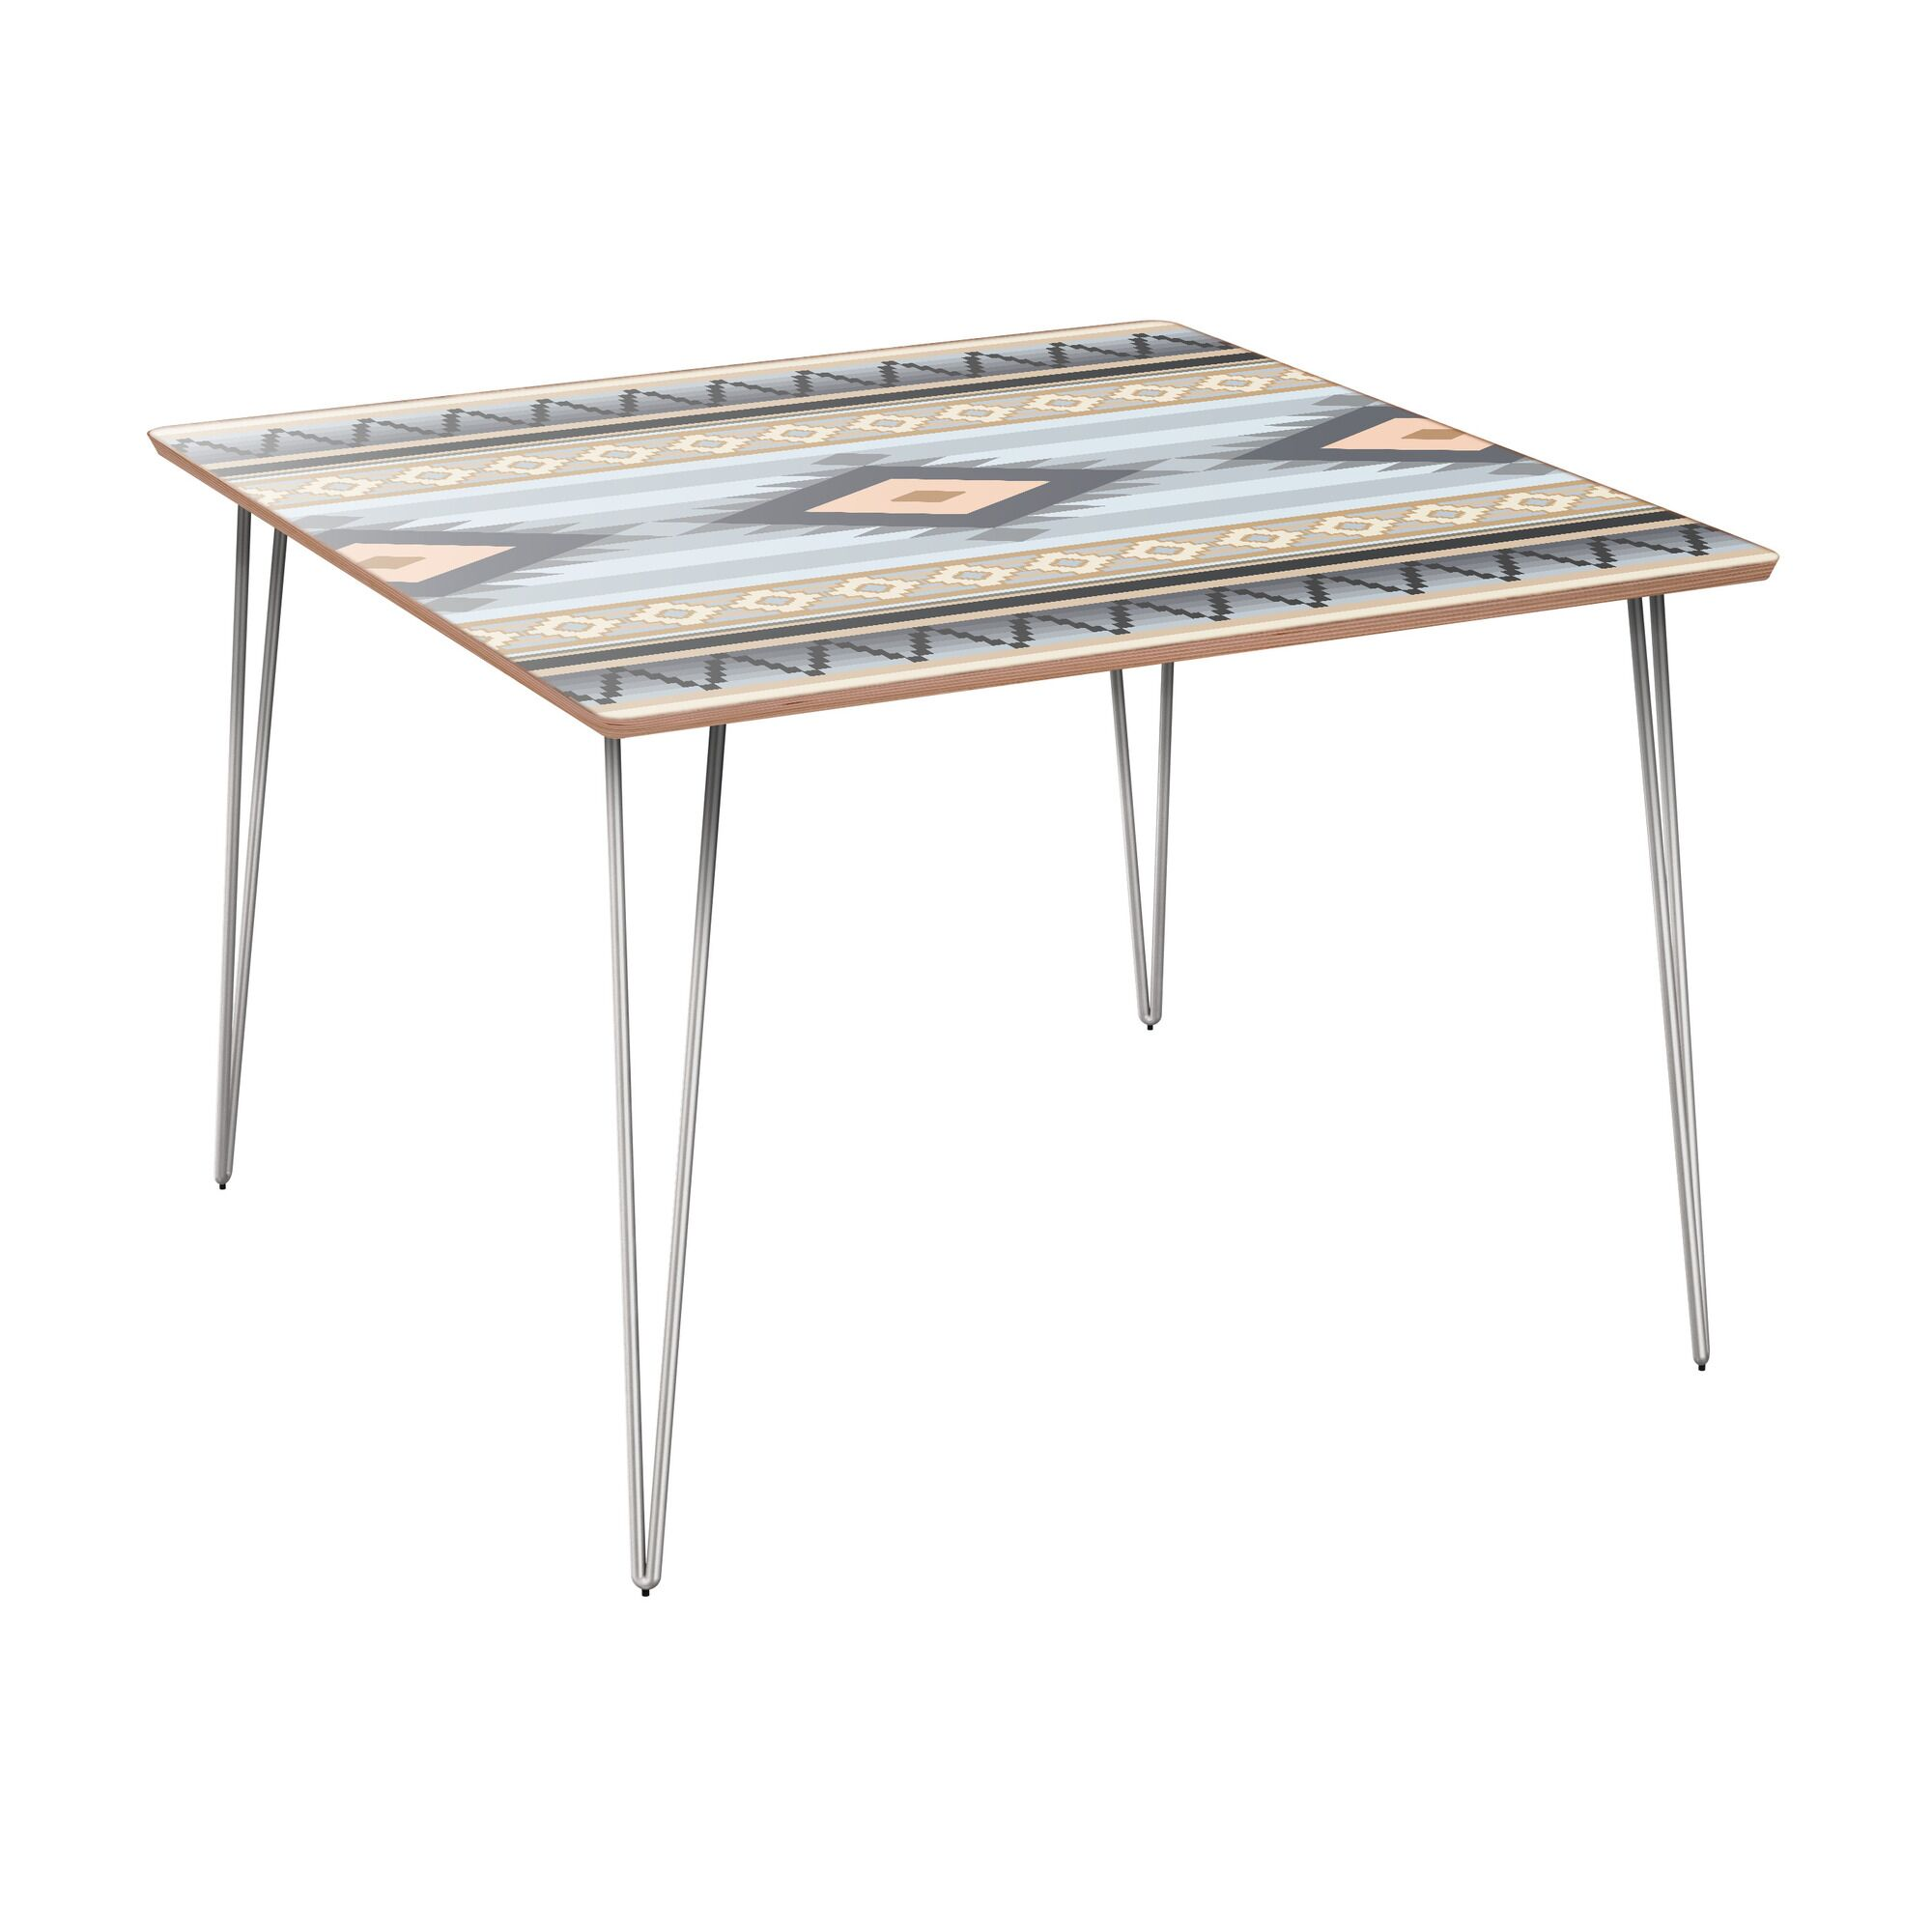 Camargo Dining Table Table Base Color: Chrome, Table Top Color: Walnut